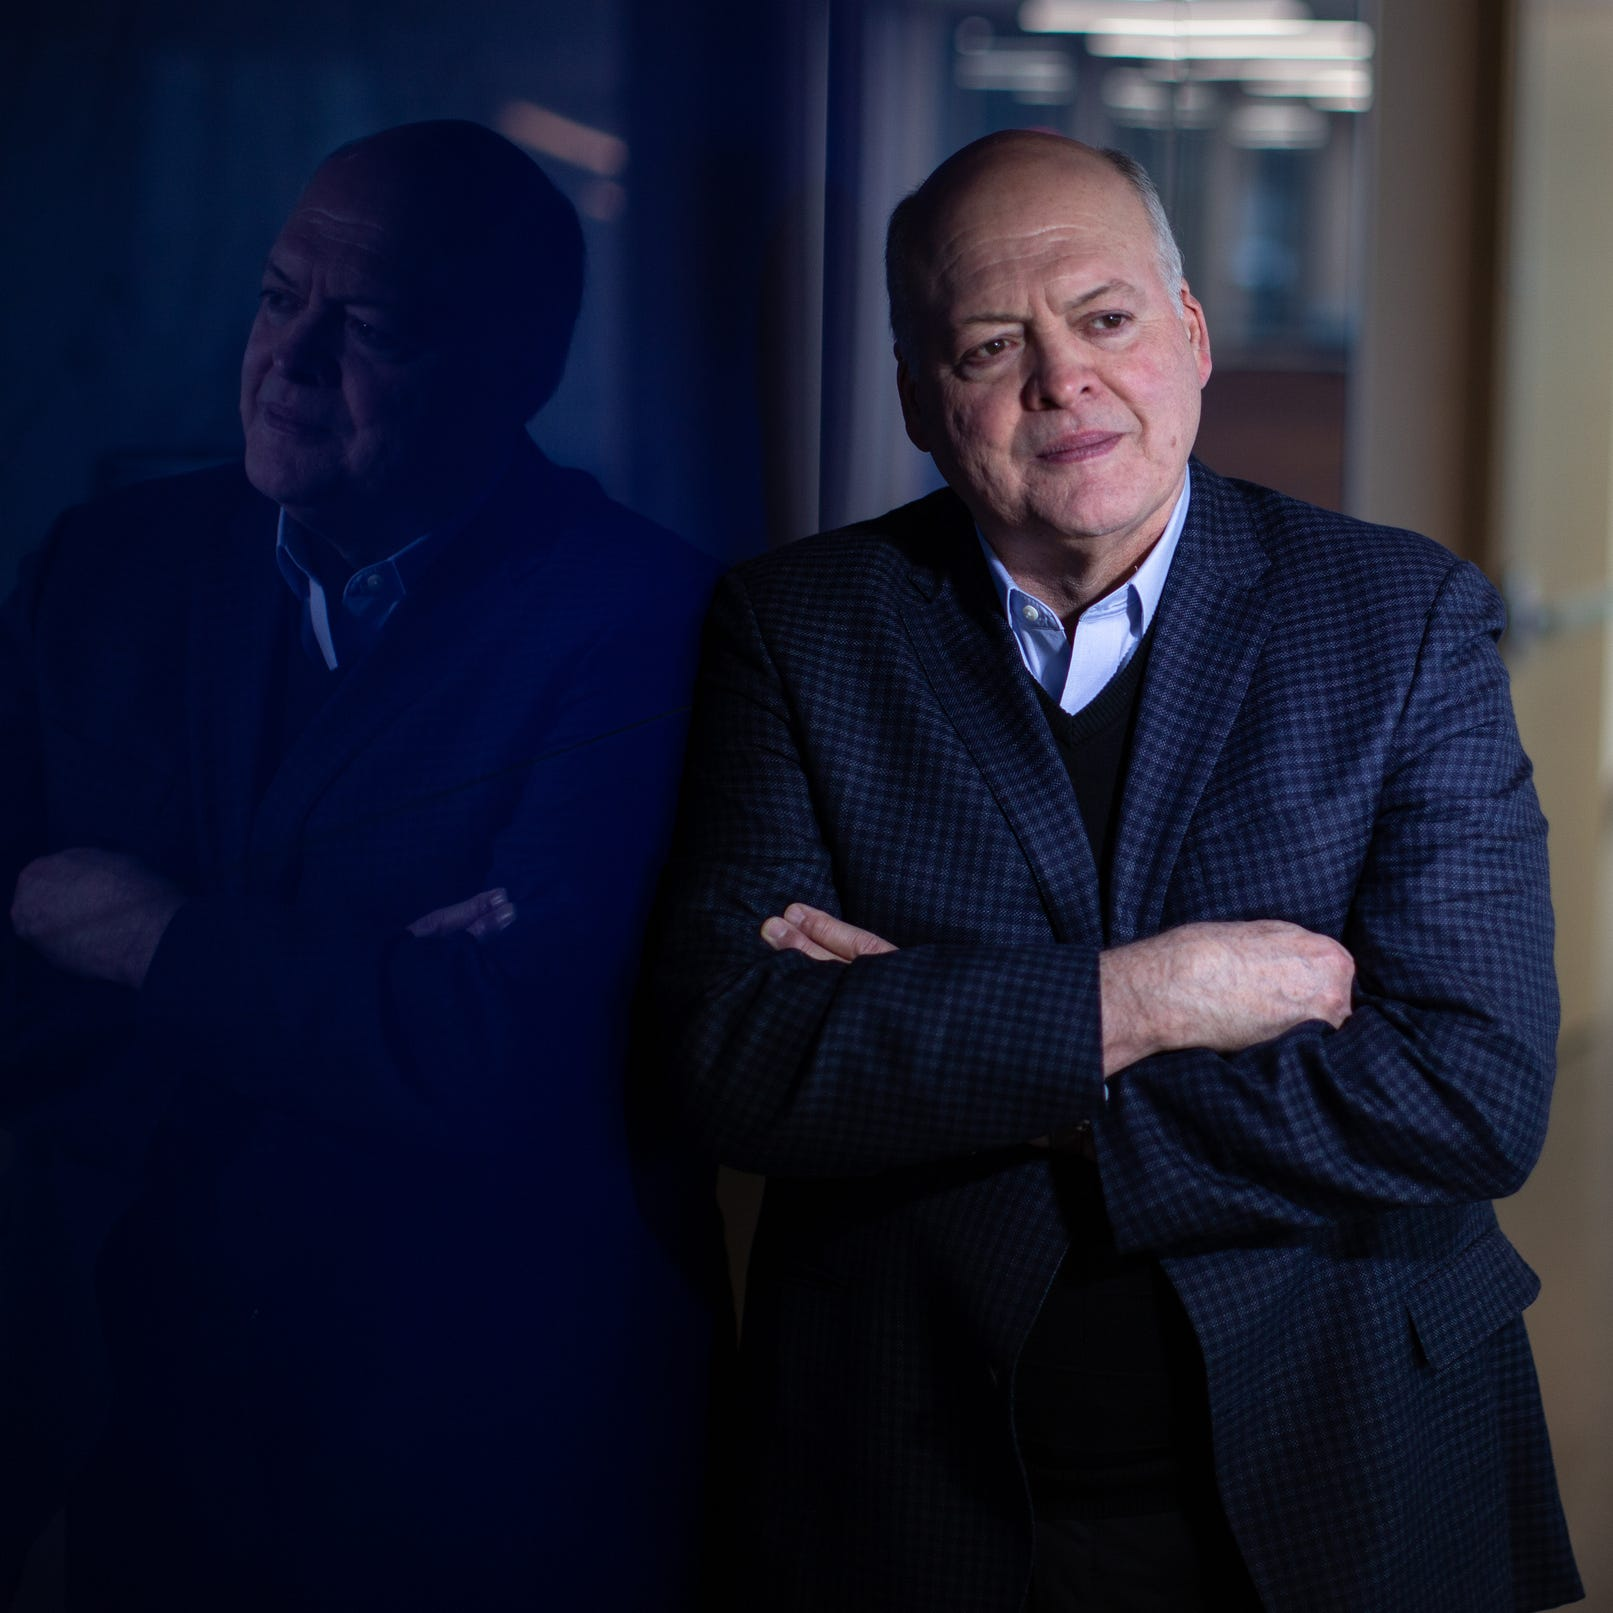 Ford CEO Jim Hackett gets pay raise, gets 276 times median employee in 2018